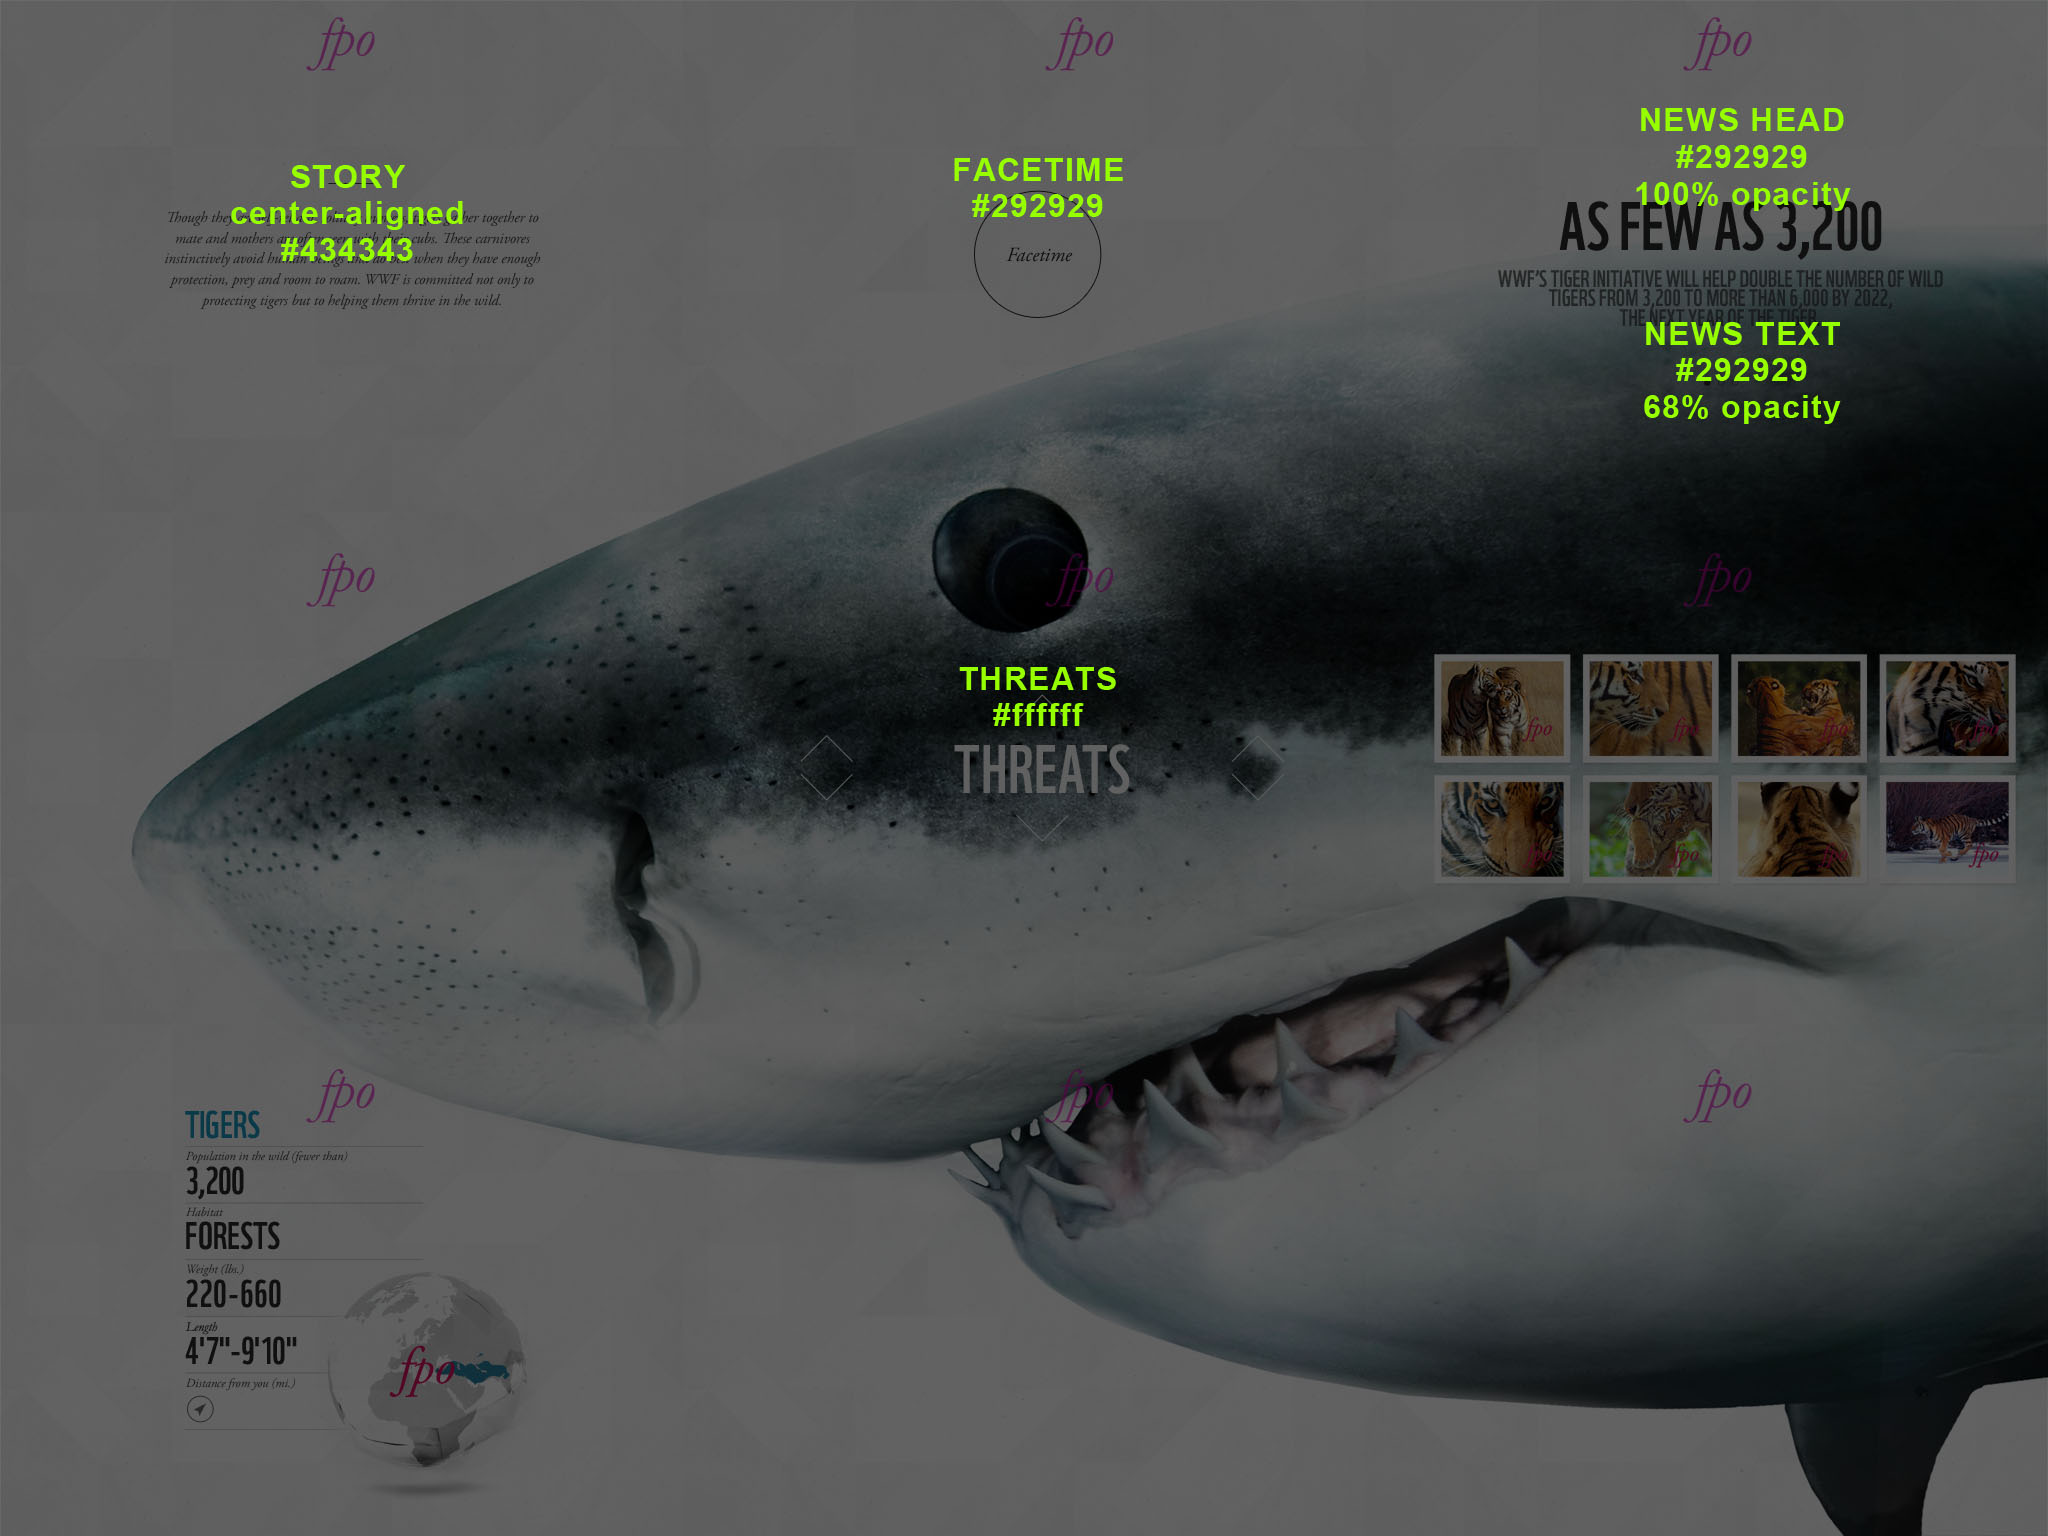 WWF_Portrait_Shark_specs